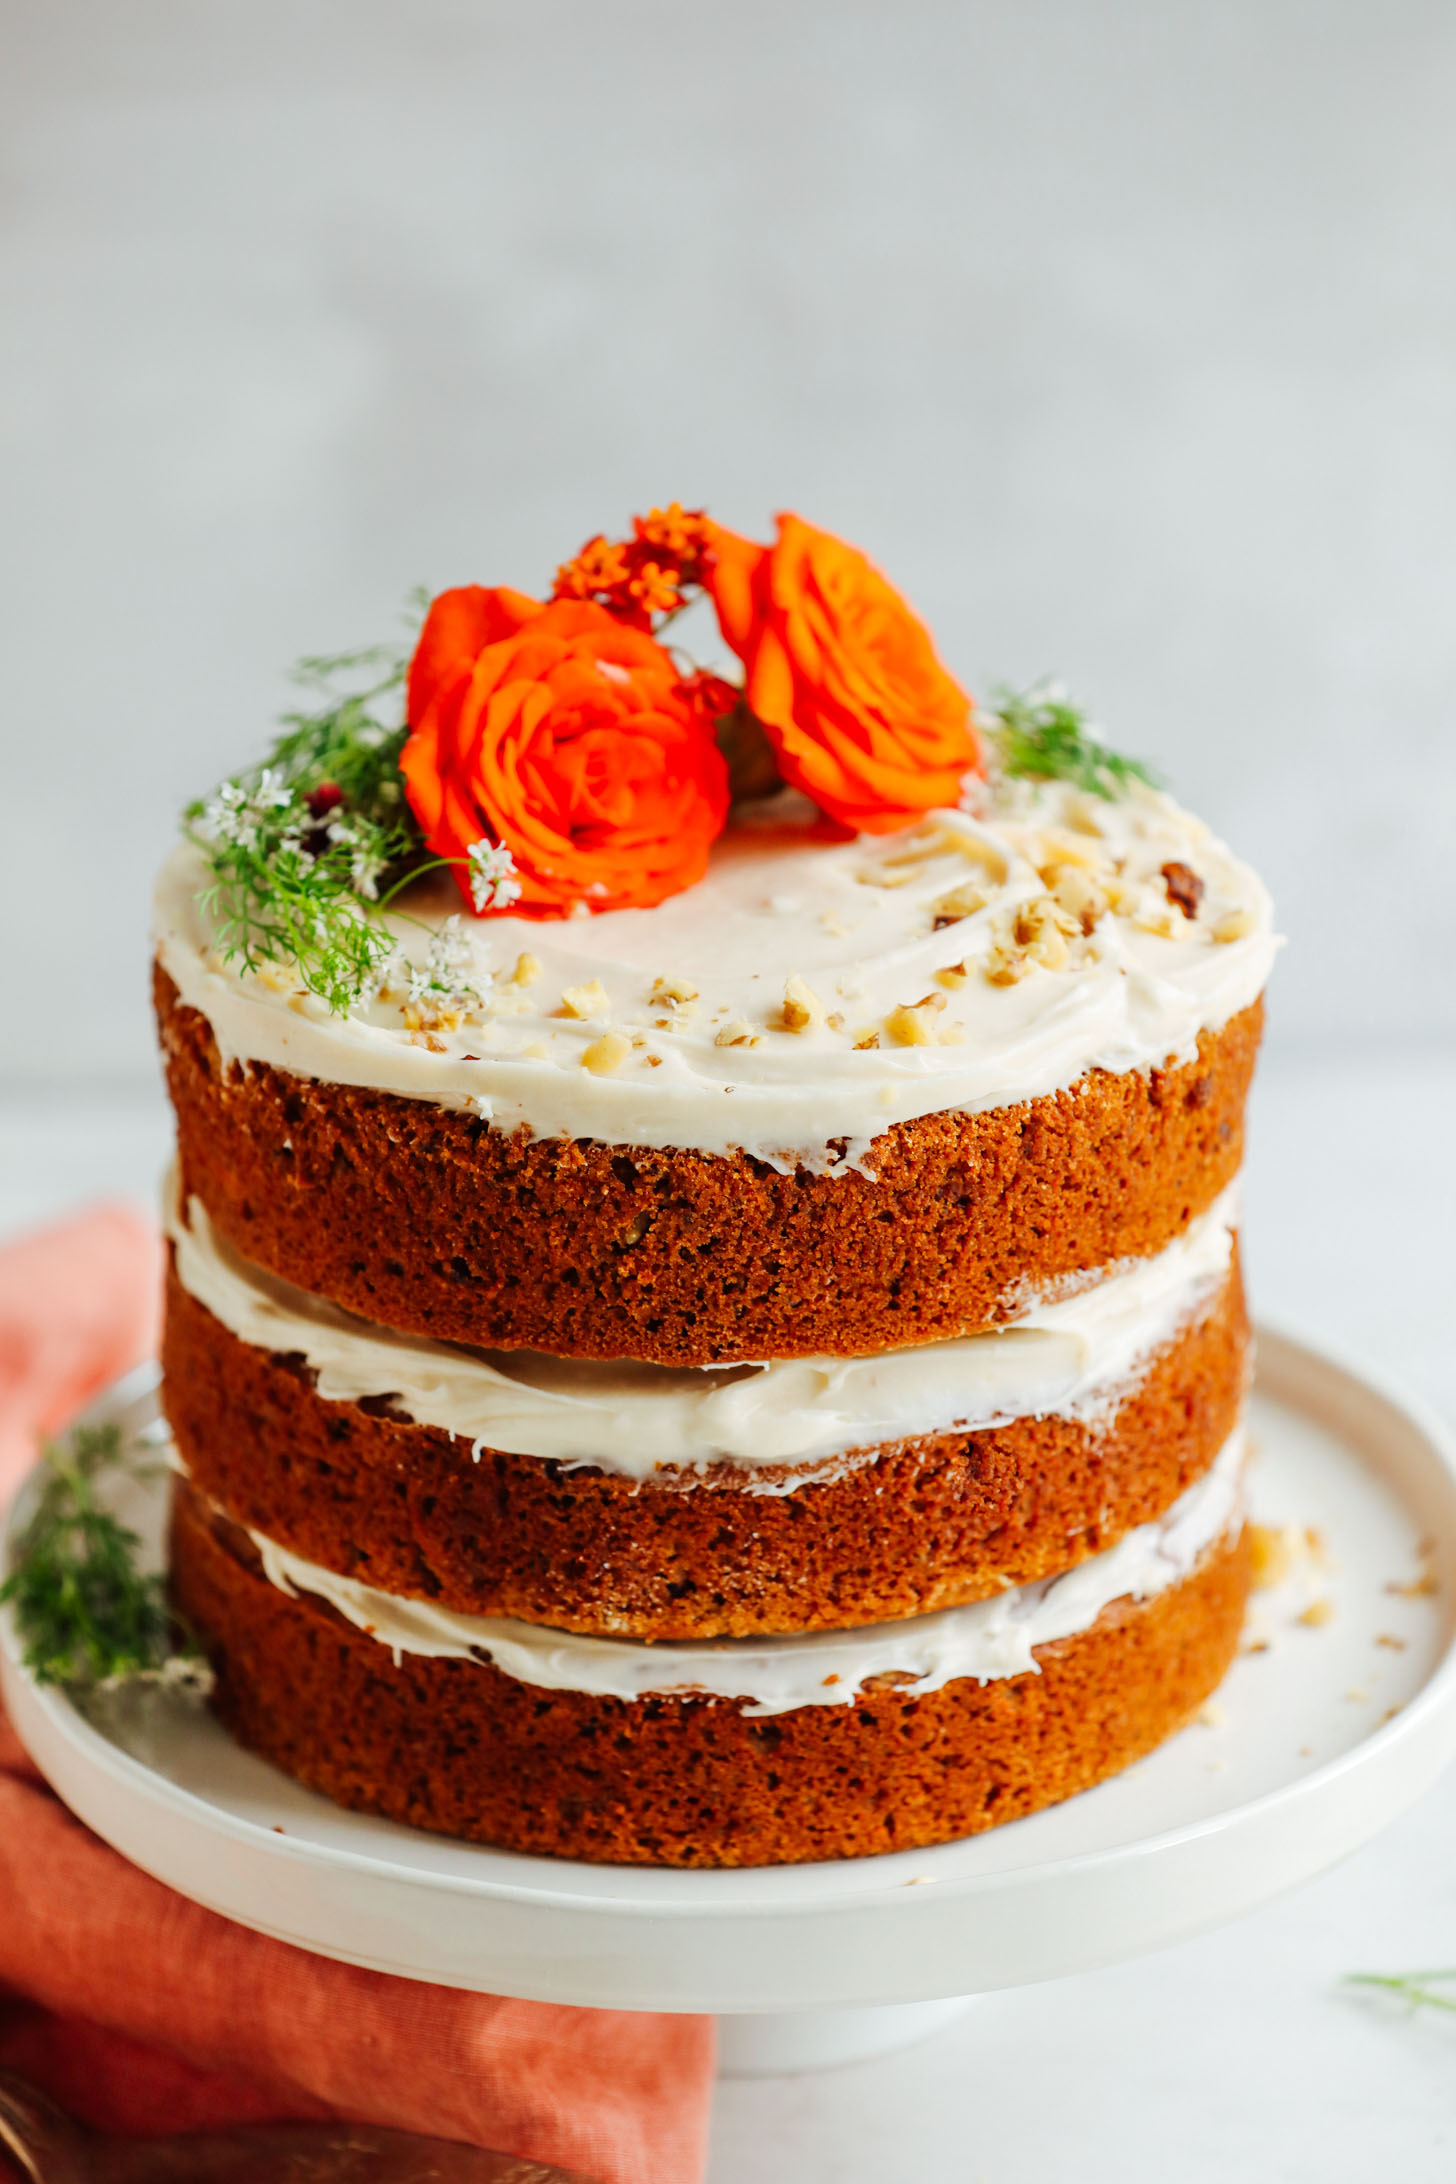 Three-layer Vegan Gluten-Free Carrot Cake decorated with flowers and chopped nuts